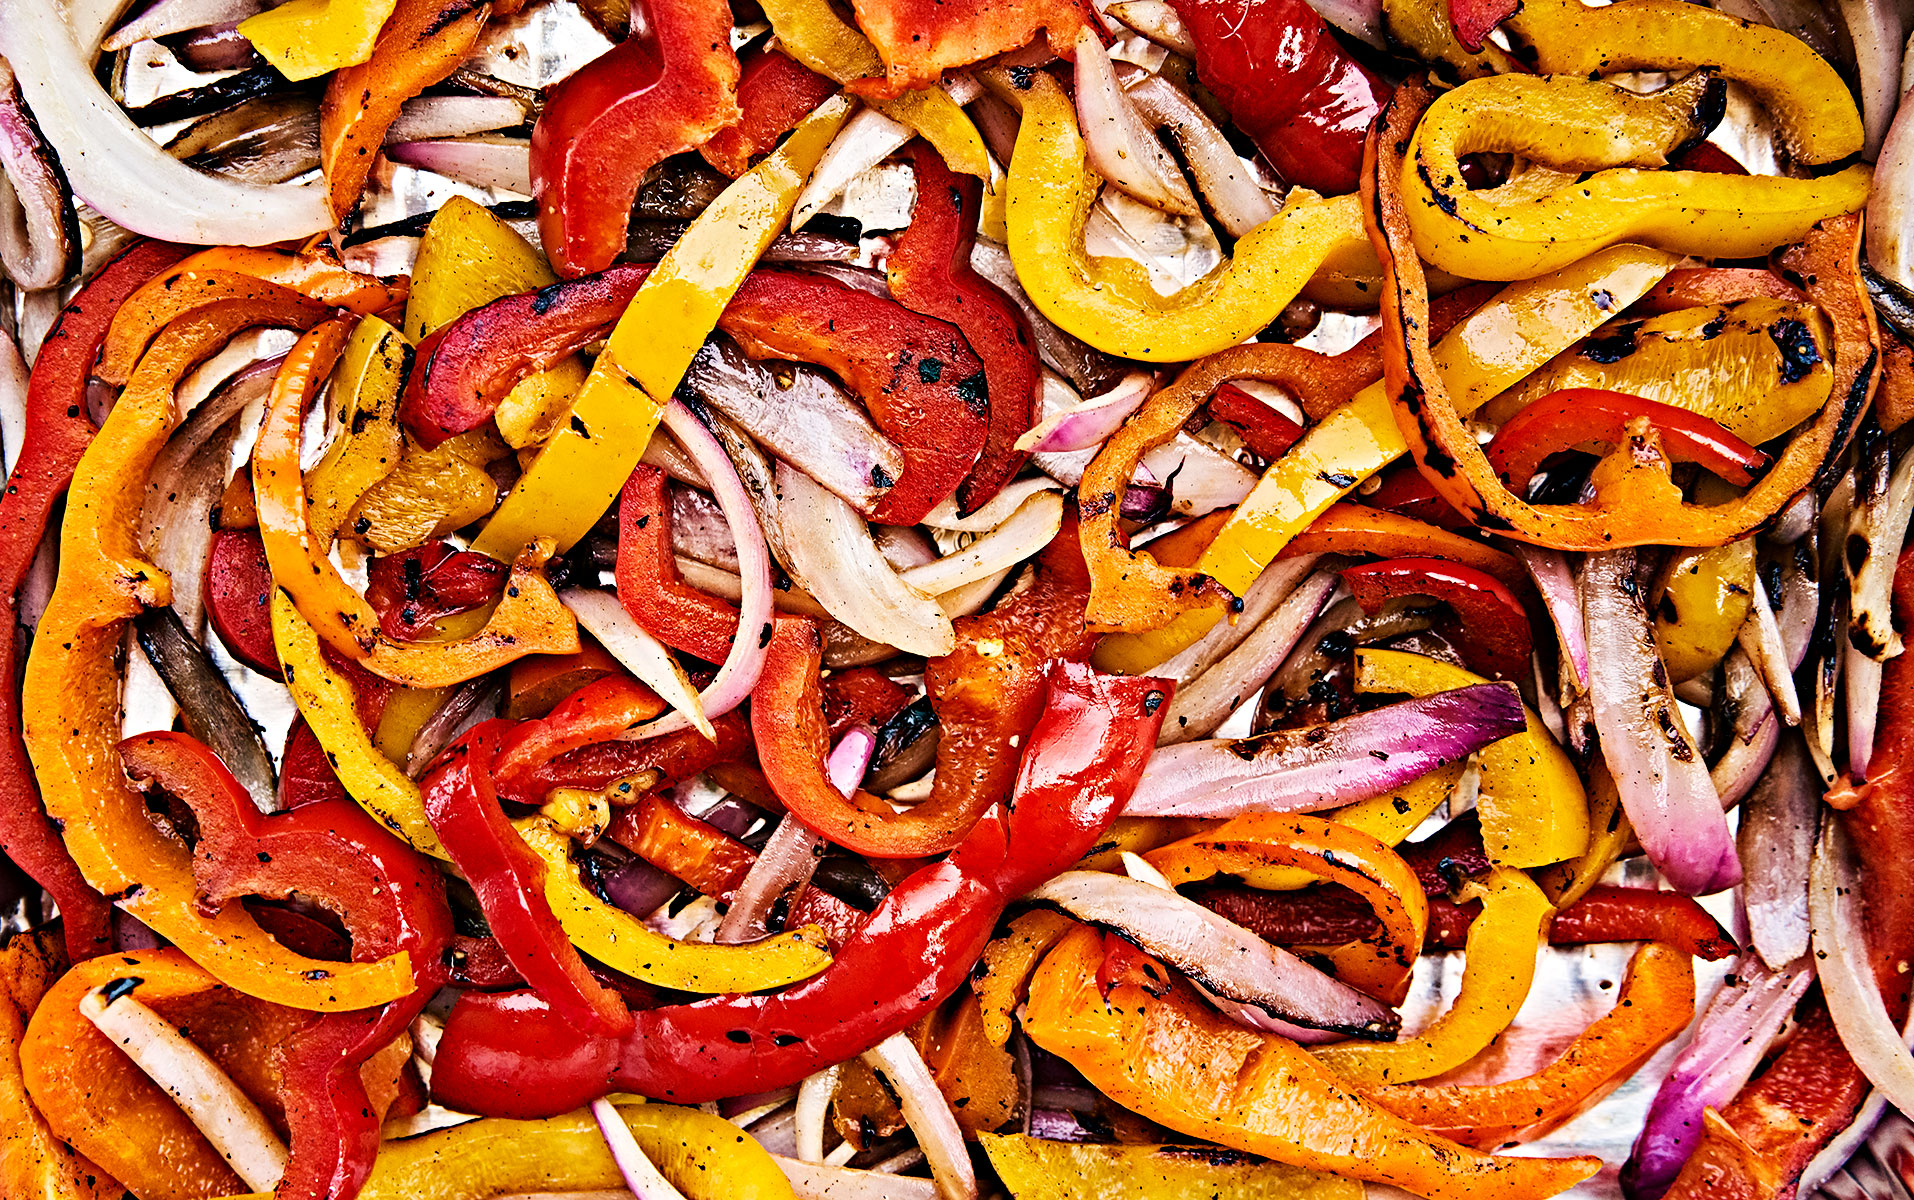 Sautéed red onions and bell peppers close-up.